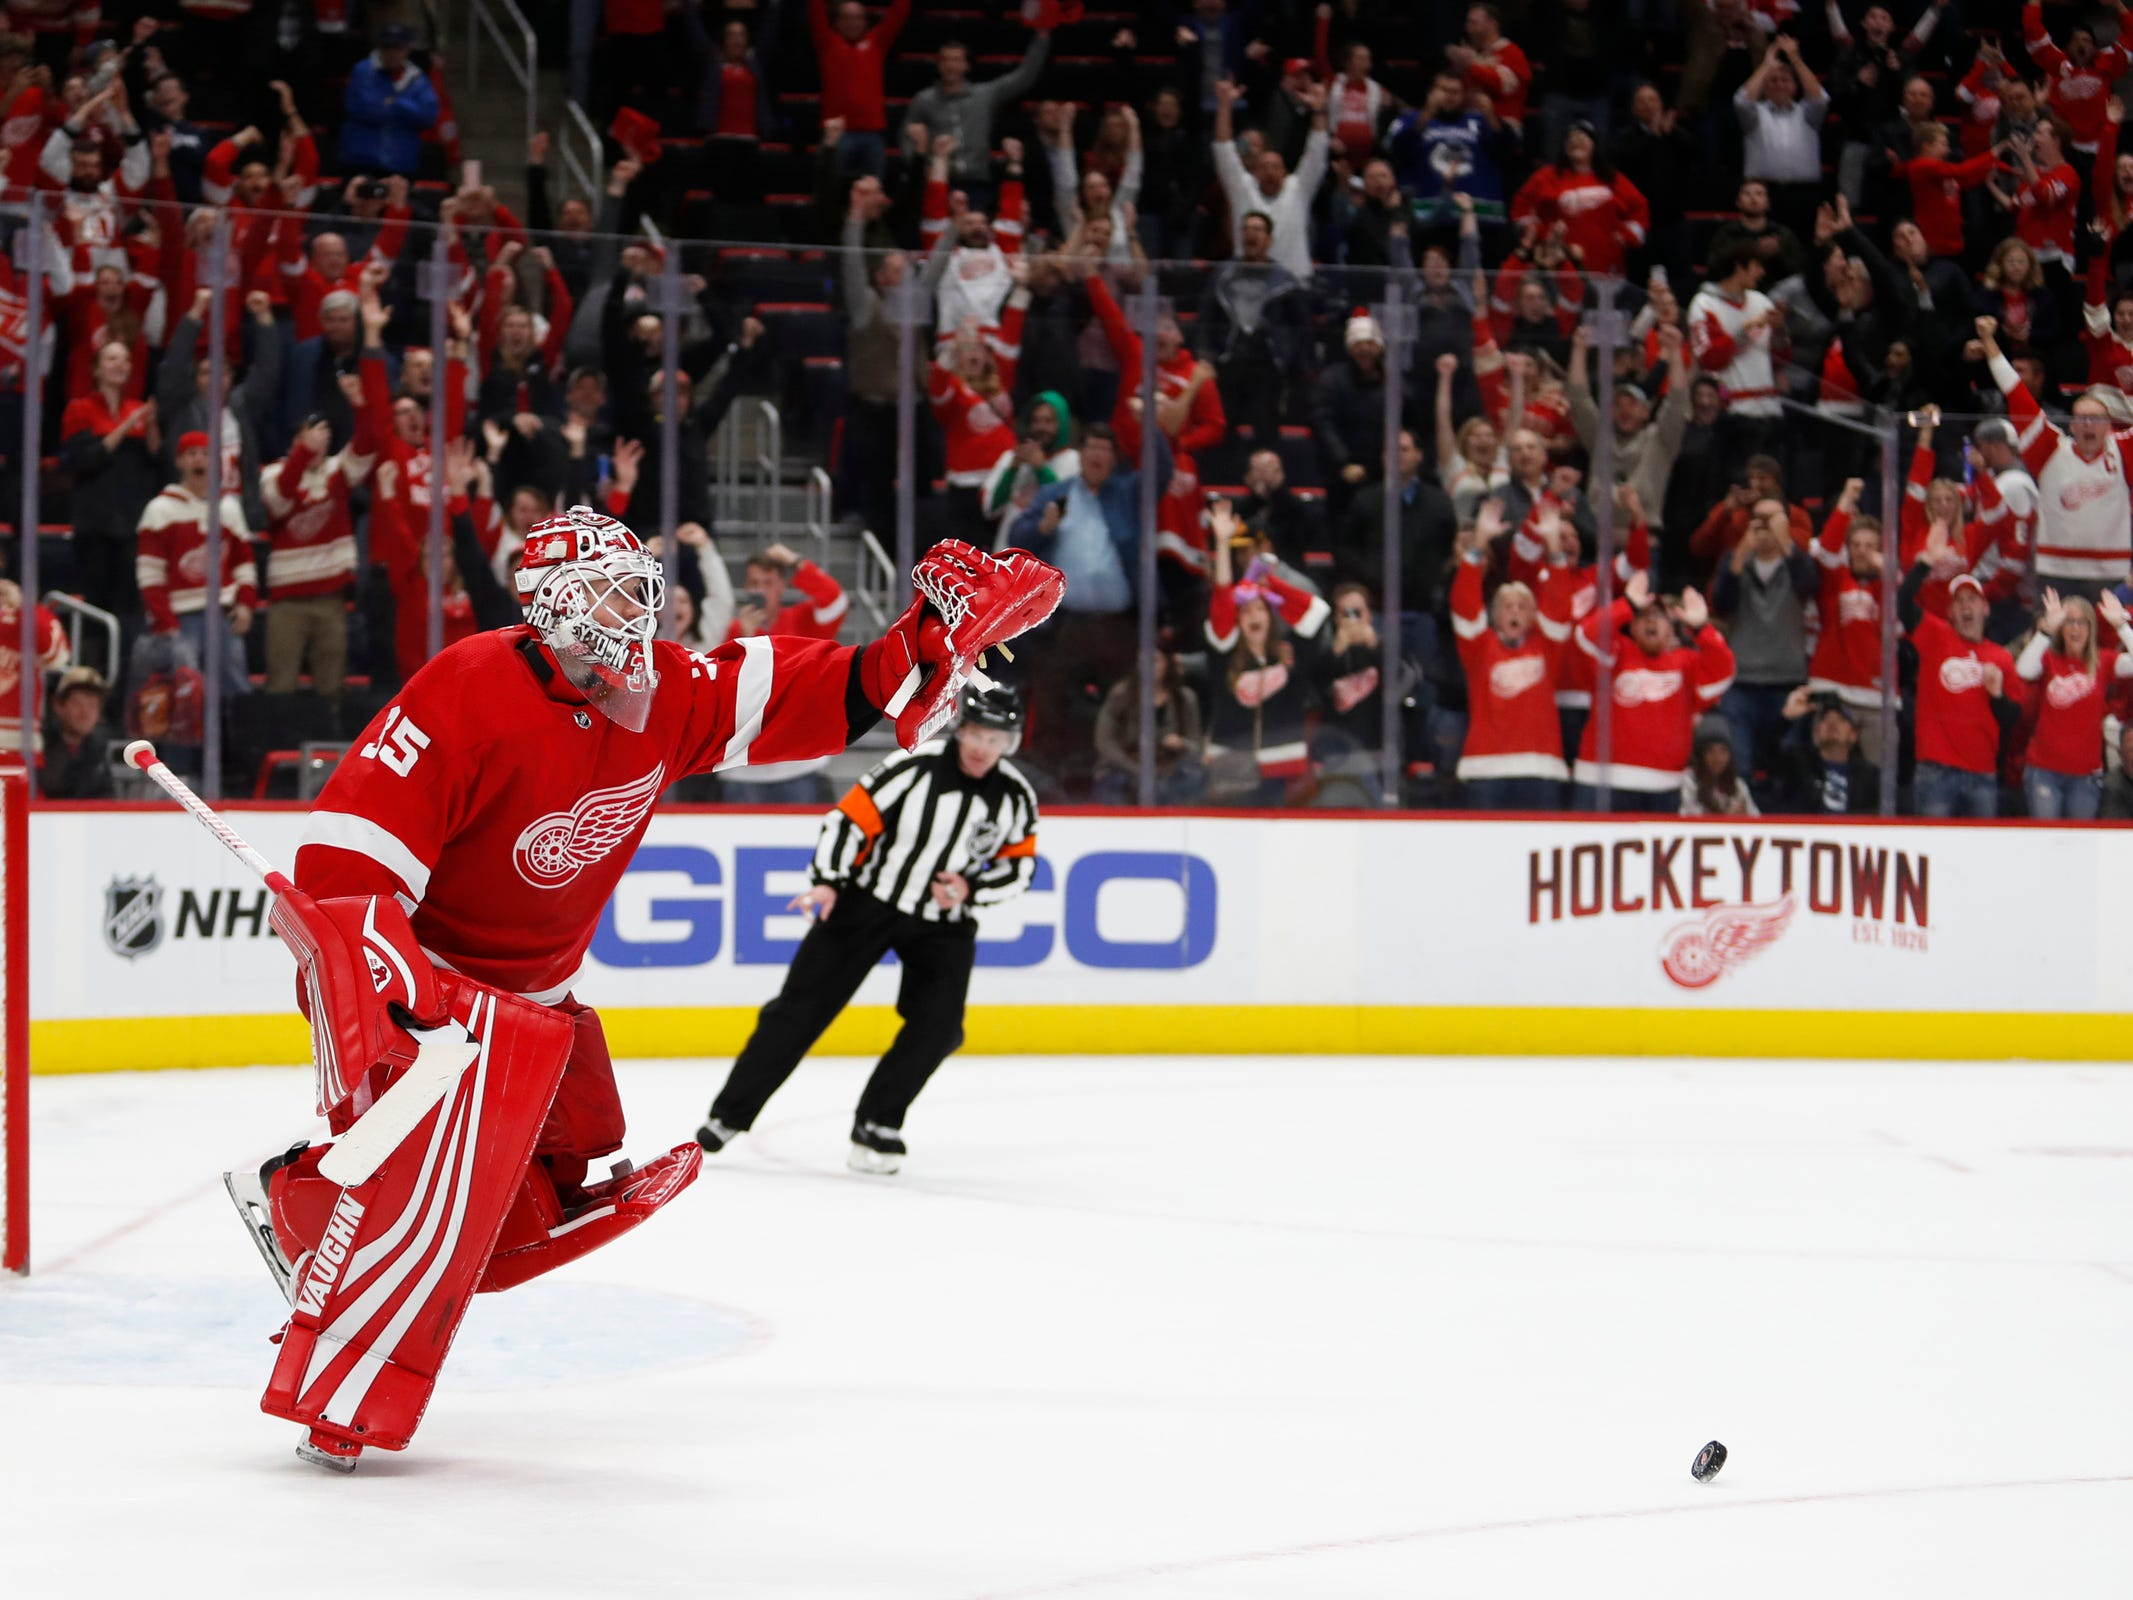 Newly resilient Detroit Red Wings rally for 4th win in past 5 games